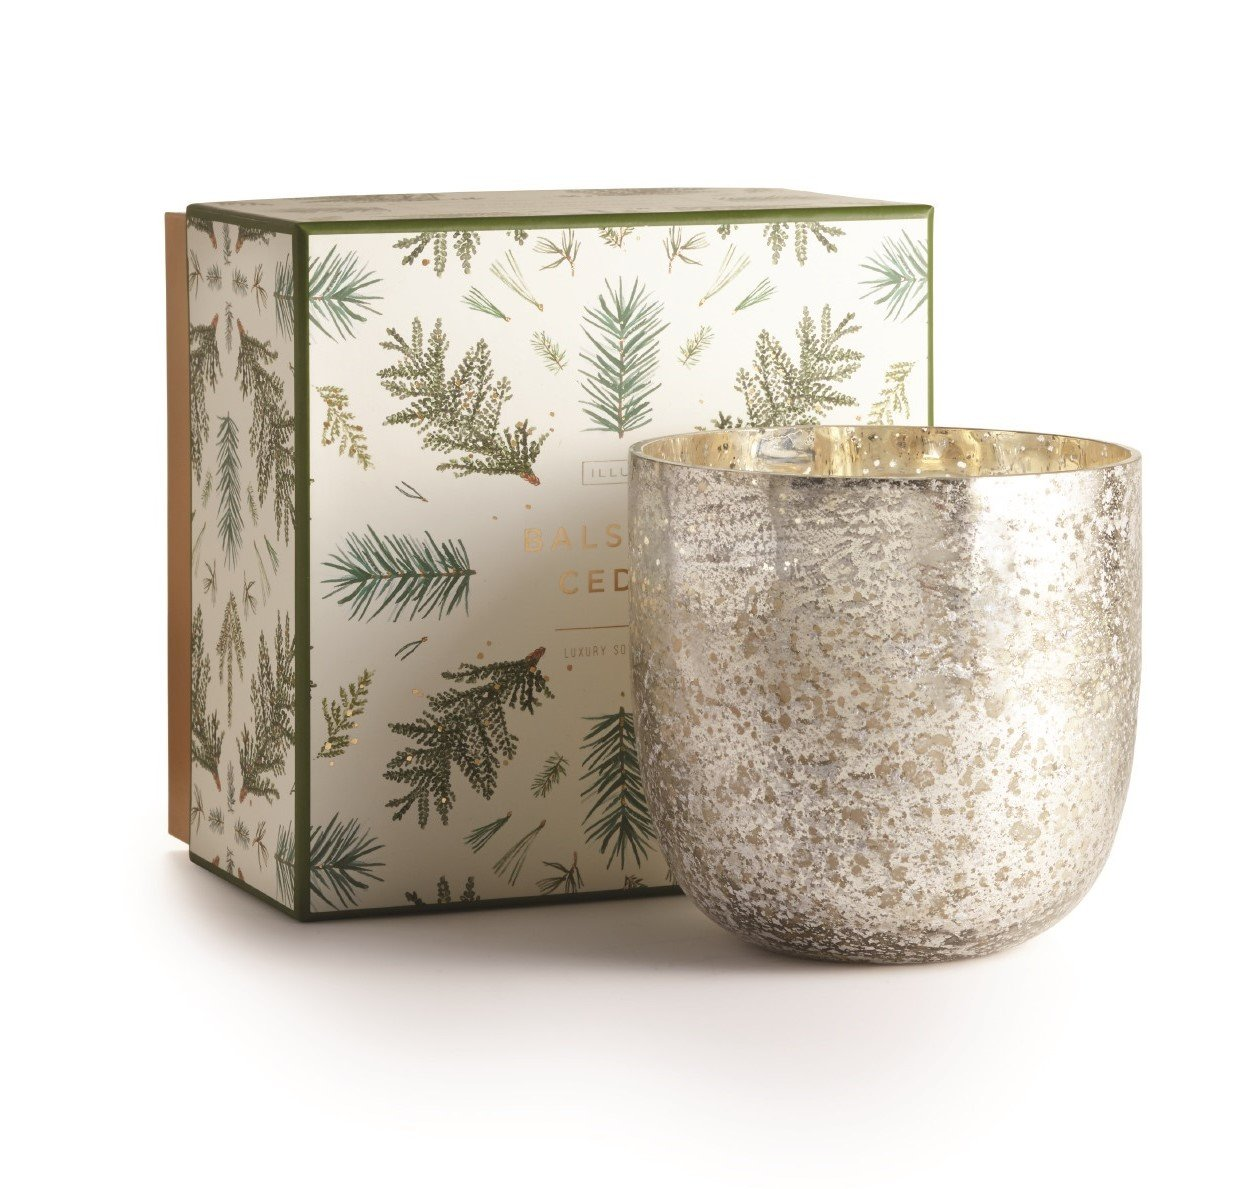 Illume Balsam and Cedar Luxe Boxed Mercury Candle 22 Ounce by Illume